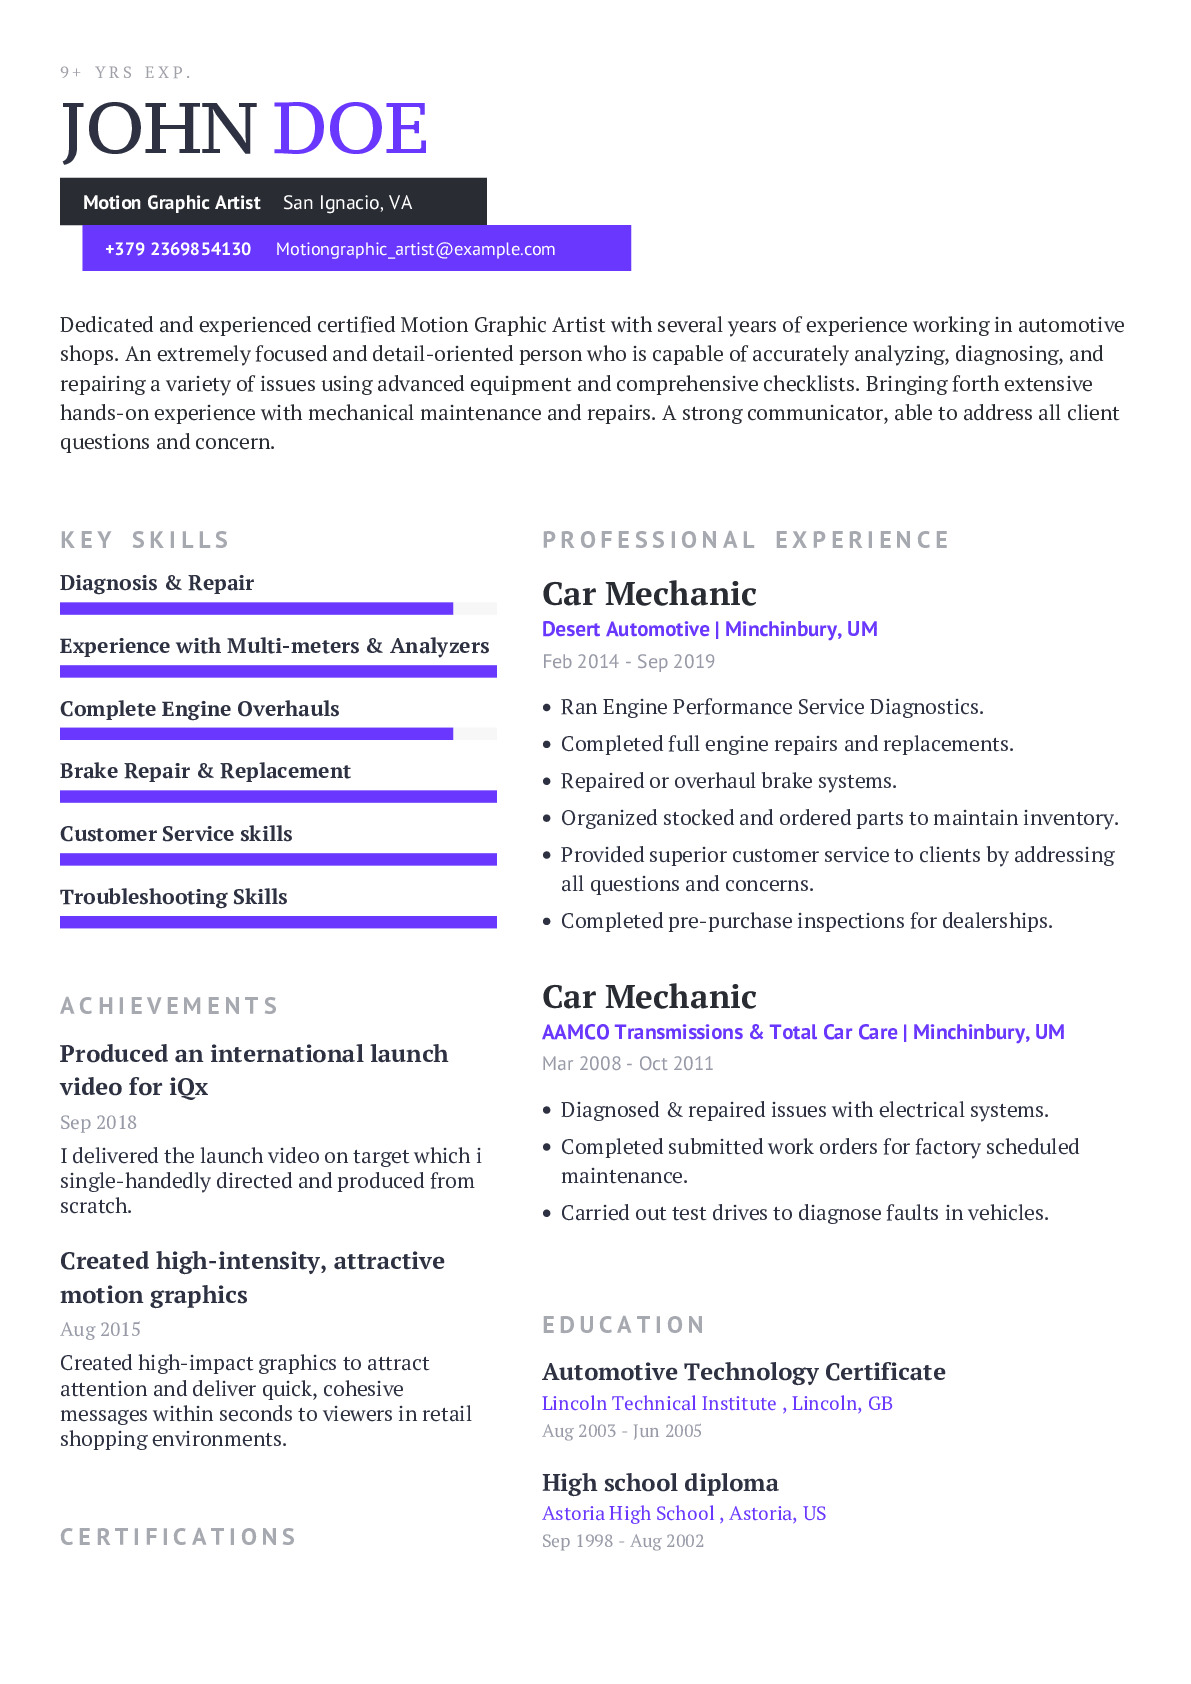 Motion Graphic Artist Resume Example